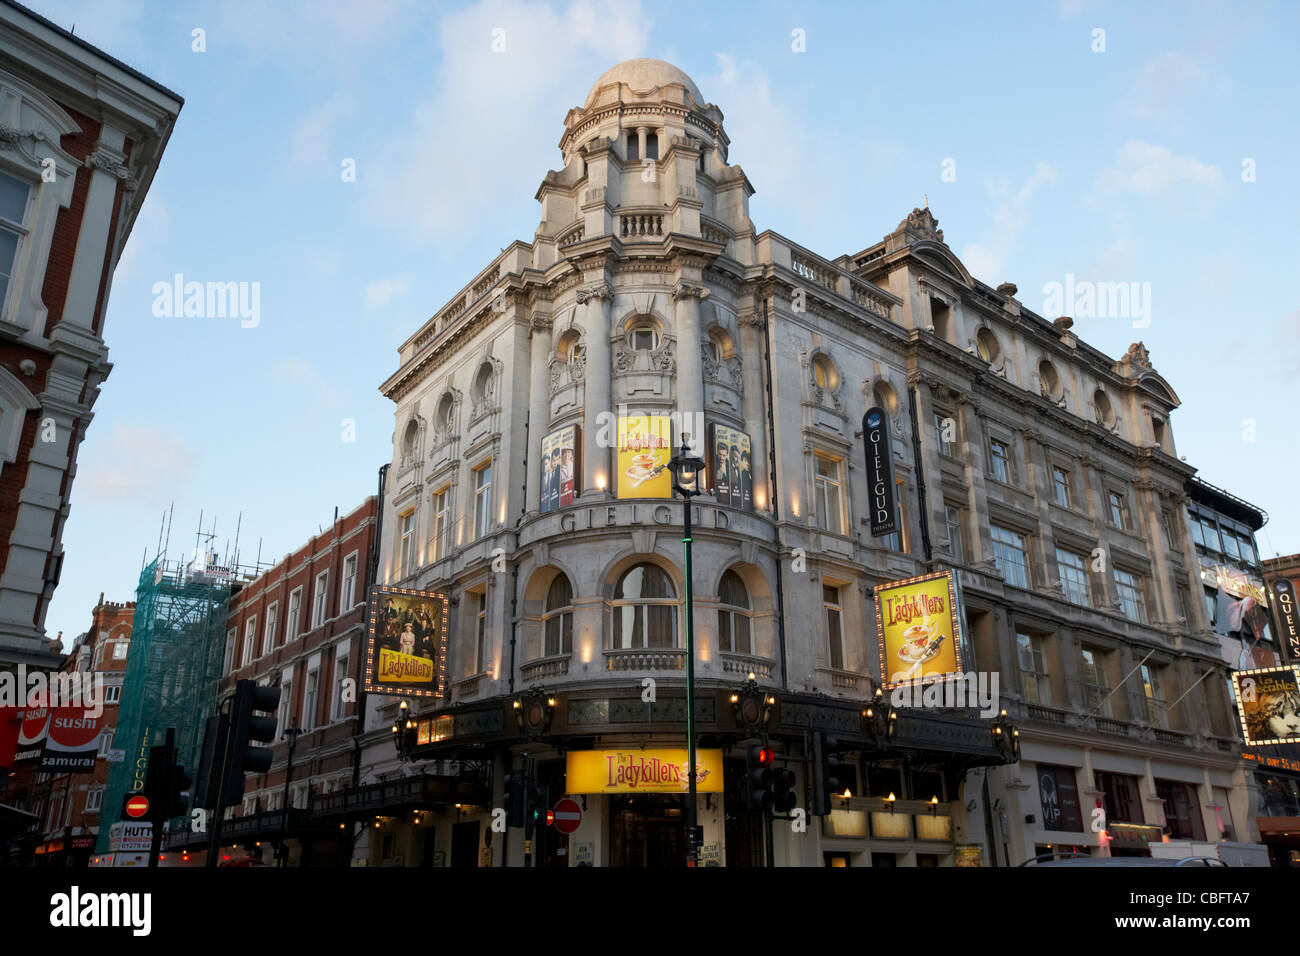 the gielgud theatre showing the ladykillers in theatreland west end london england uk united kingdom - Stock Image